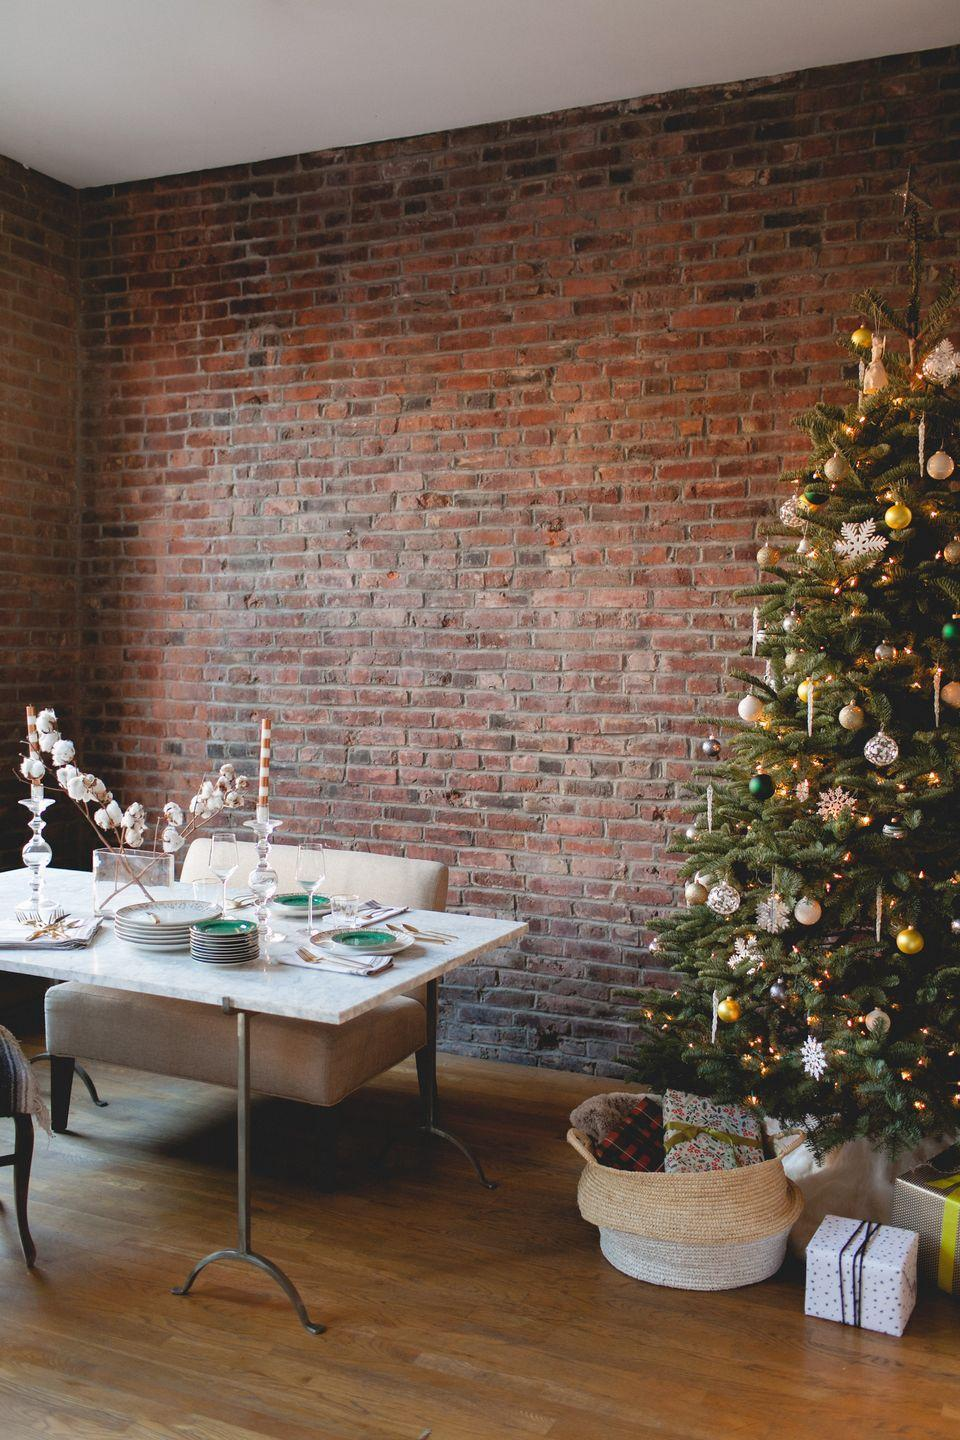 "<p>What's the perfect addition to an exposed-brick dining room? A beautifully designed Christmas tree, naturally. This city loft gets a magical touch of the forest with a tree daintily designed by <a href=""http://www.cocokelley.com/2014/12/merry-christmas/"" rel=""nofollow noopener"" target=""_blank"" data-ylk=""slk:Coco Kelley"" class=""link rapid-noclick-resp"">Coco Kelley</a> in yellow, green, and silver ornaments—and, of course, cushioned with presents. </p>"